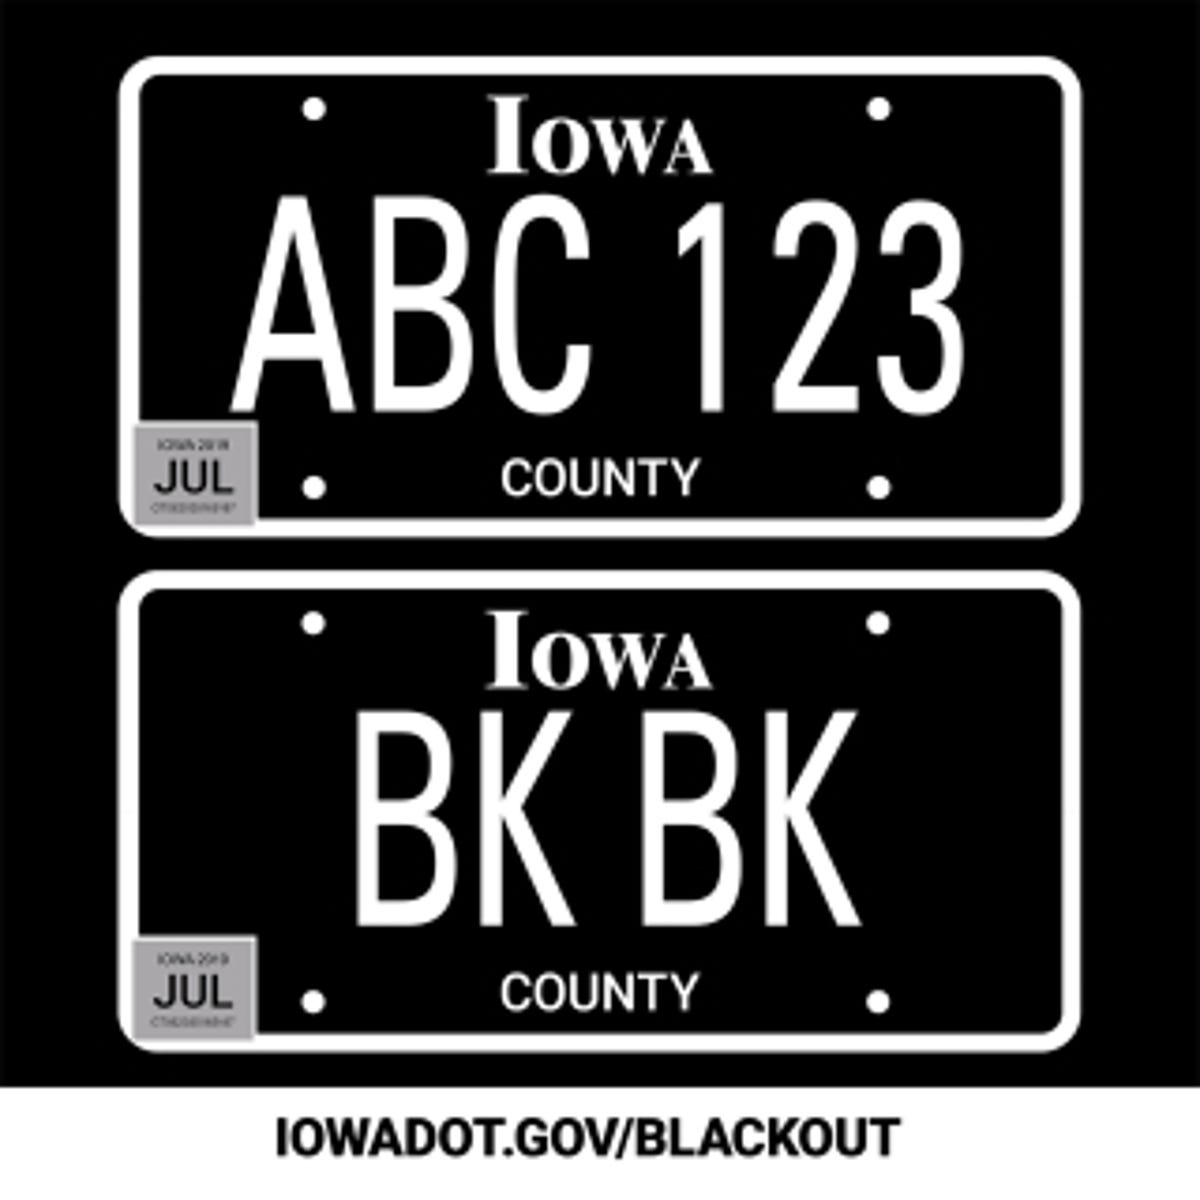 It's now easier than ever to get Iowa's blackout license plates